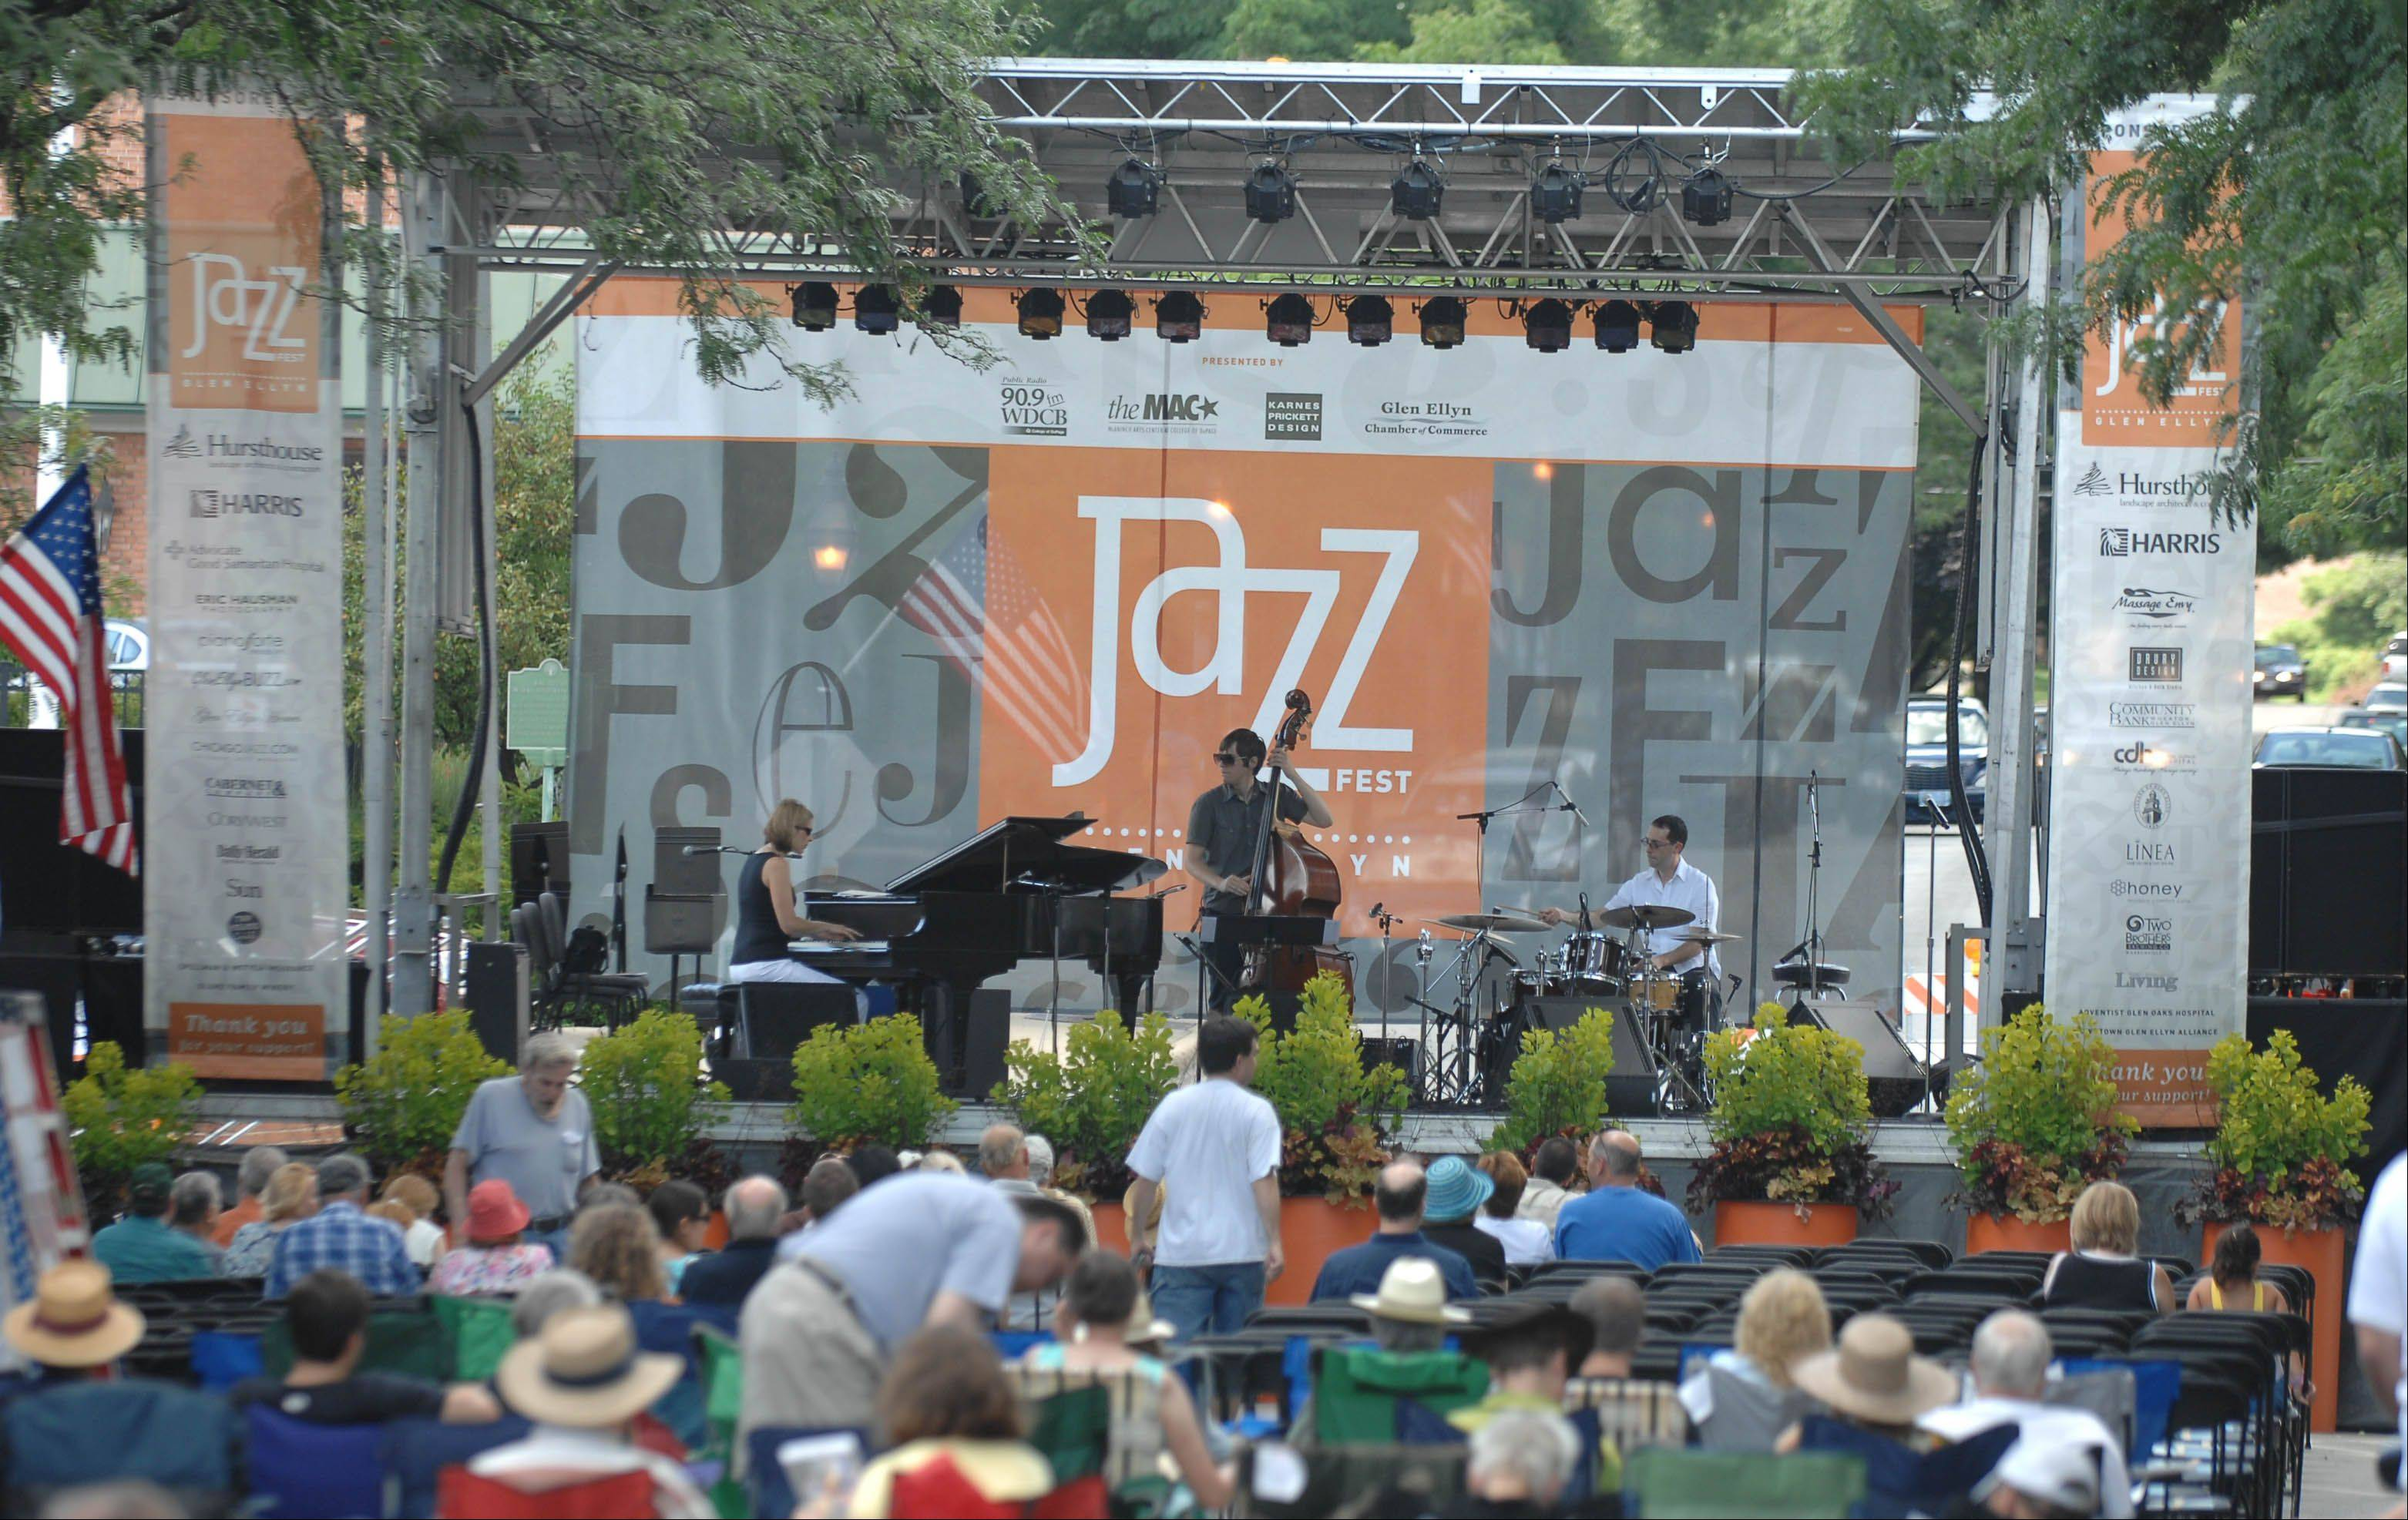 Glen Ellyn�s fifth annual Jazz Fest runs from 3 to 10 p.m. today in the heart of downtown.